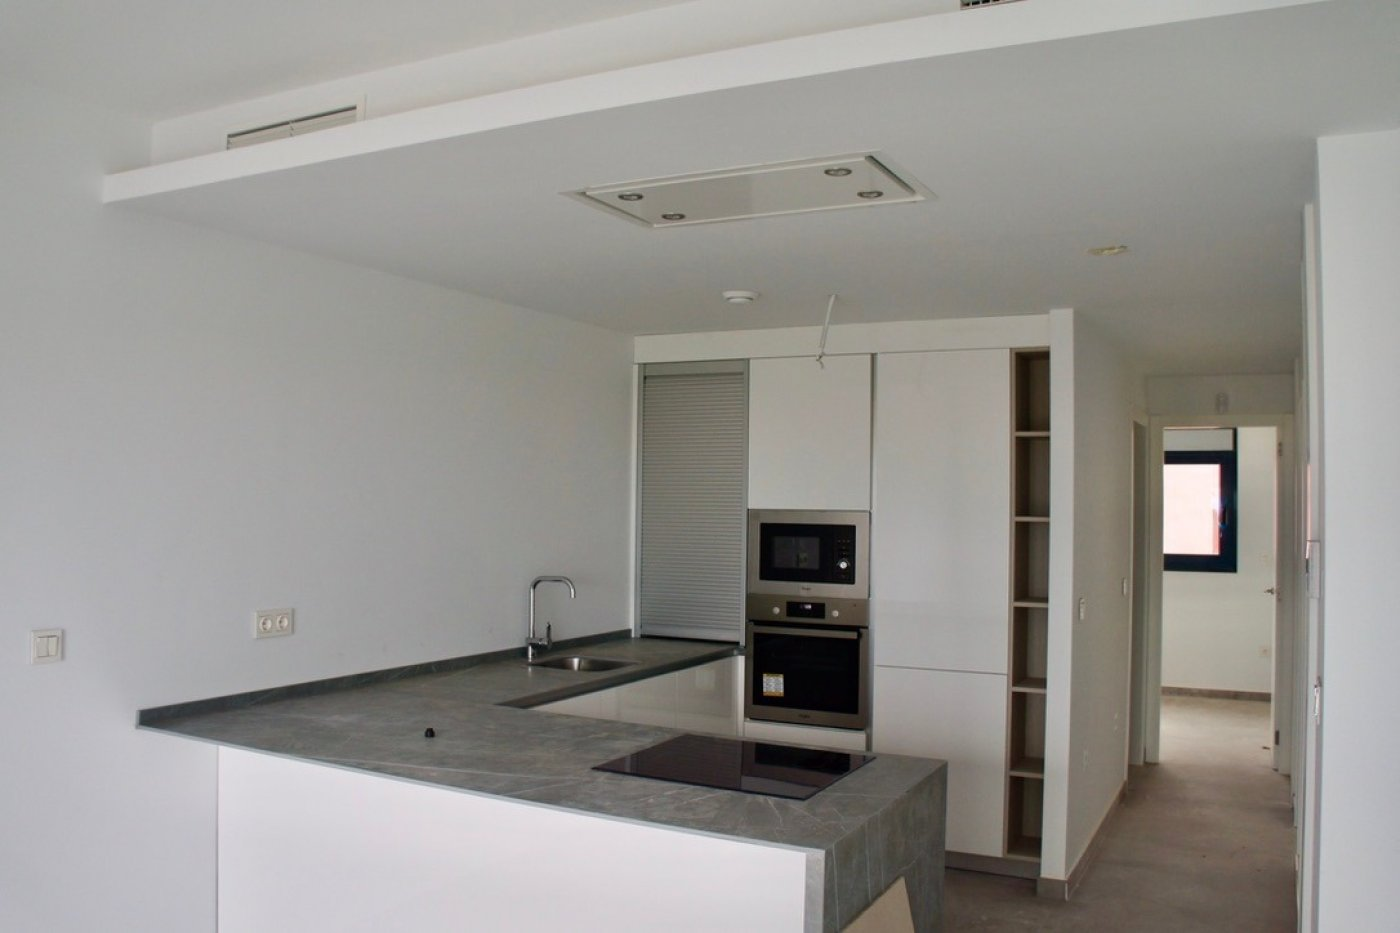 Gallery Image 8 of Lovely new build 2 bed penthouse with 2 bath and 58 m2 roof terrasse